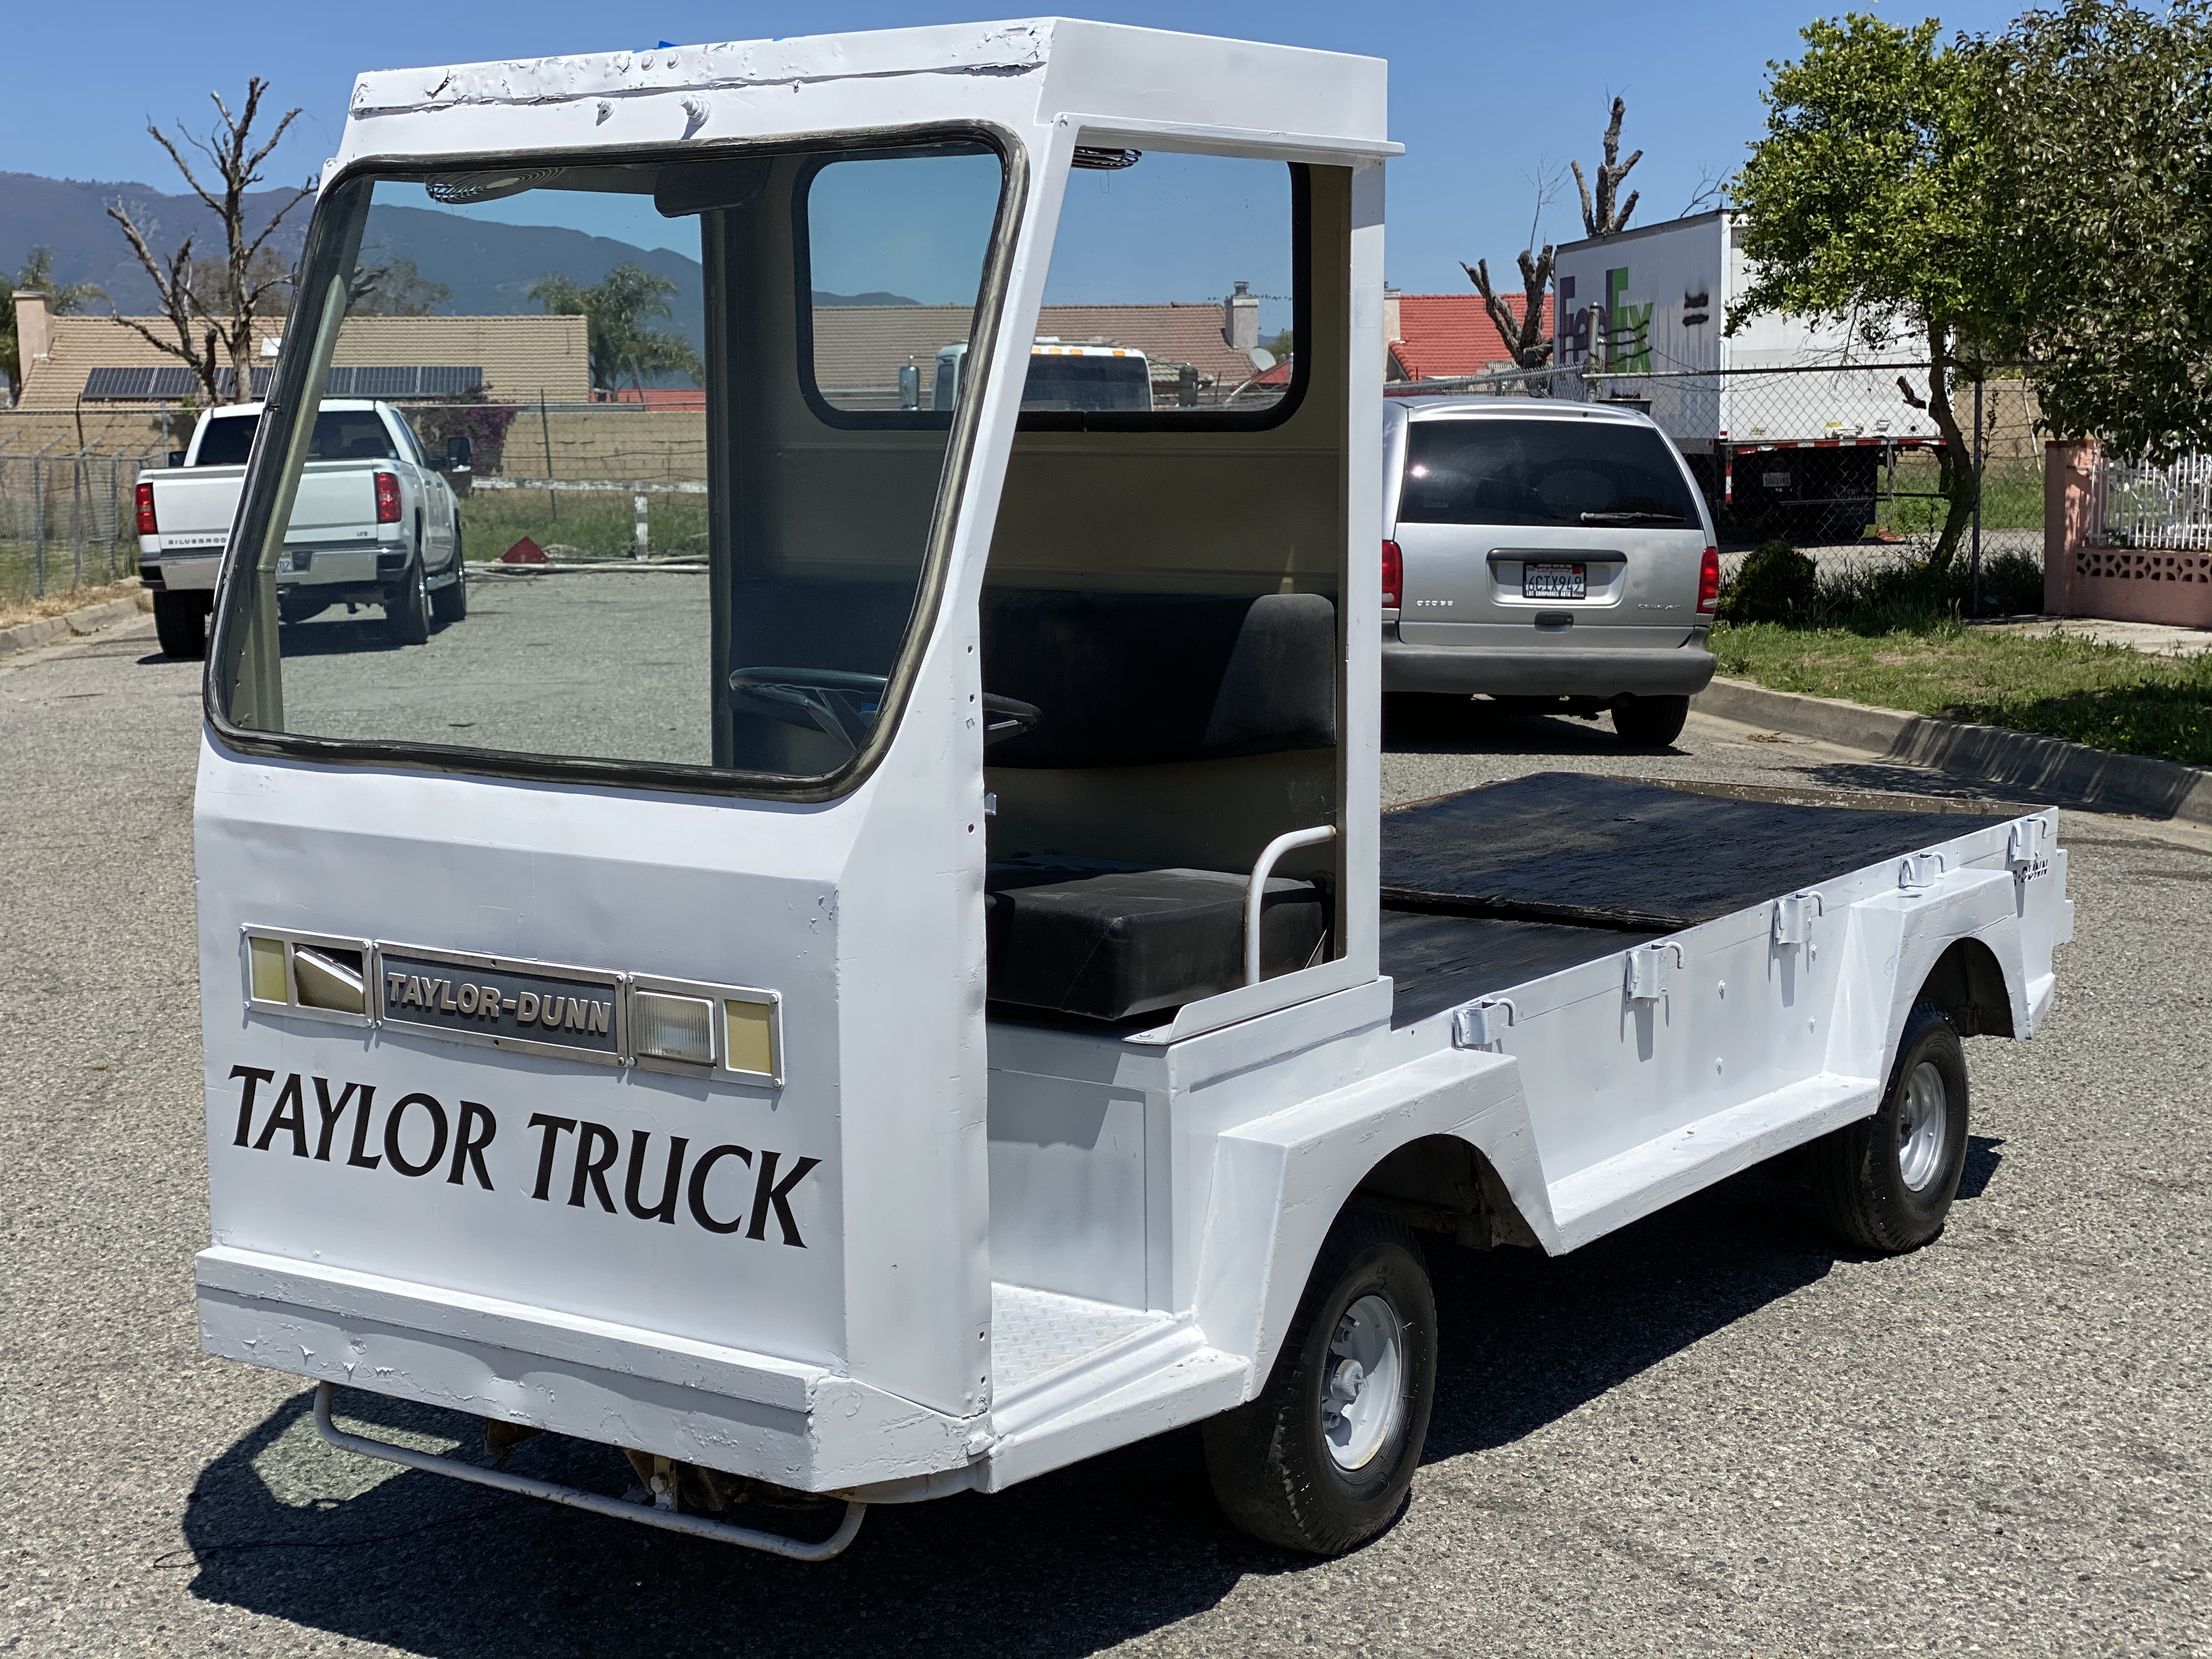 Taylor Truck